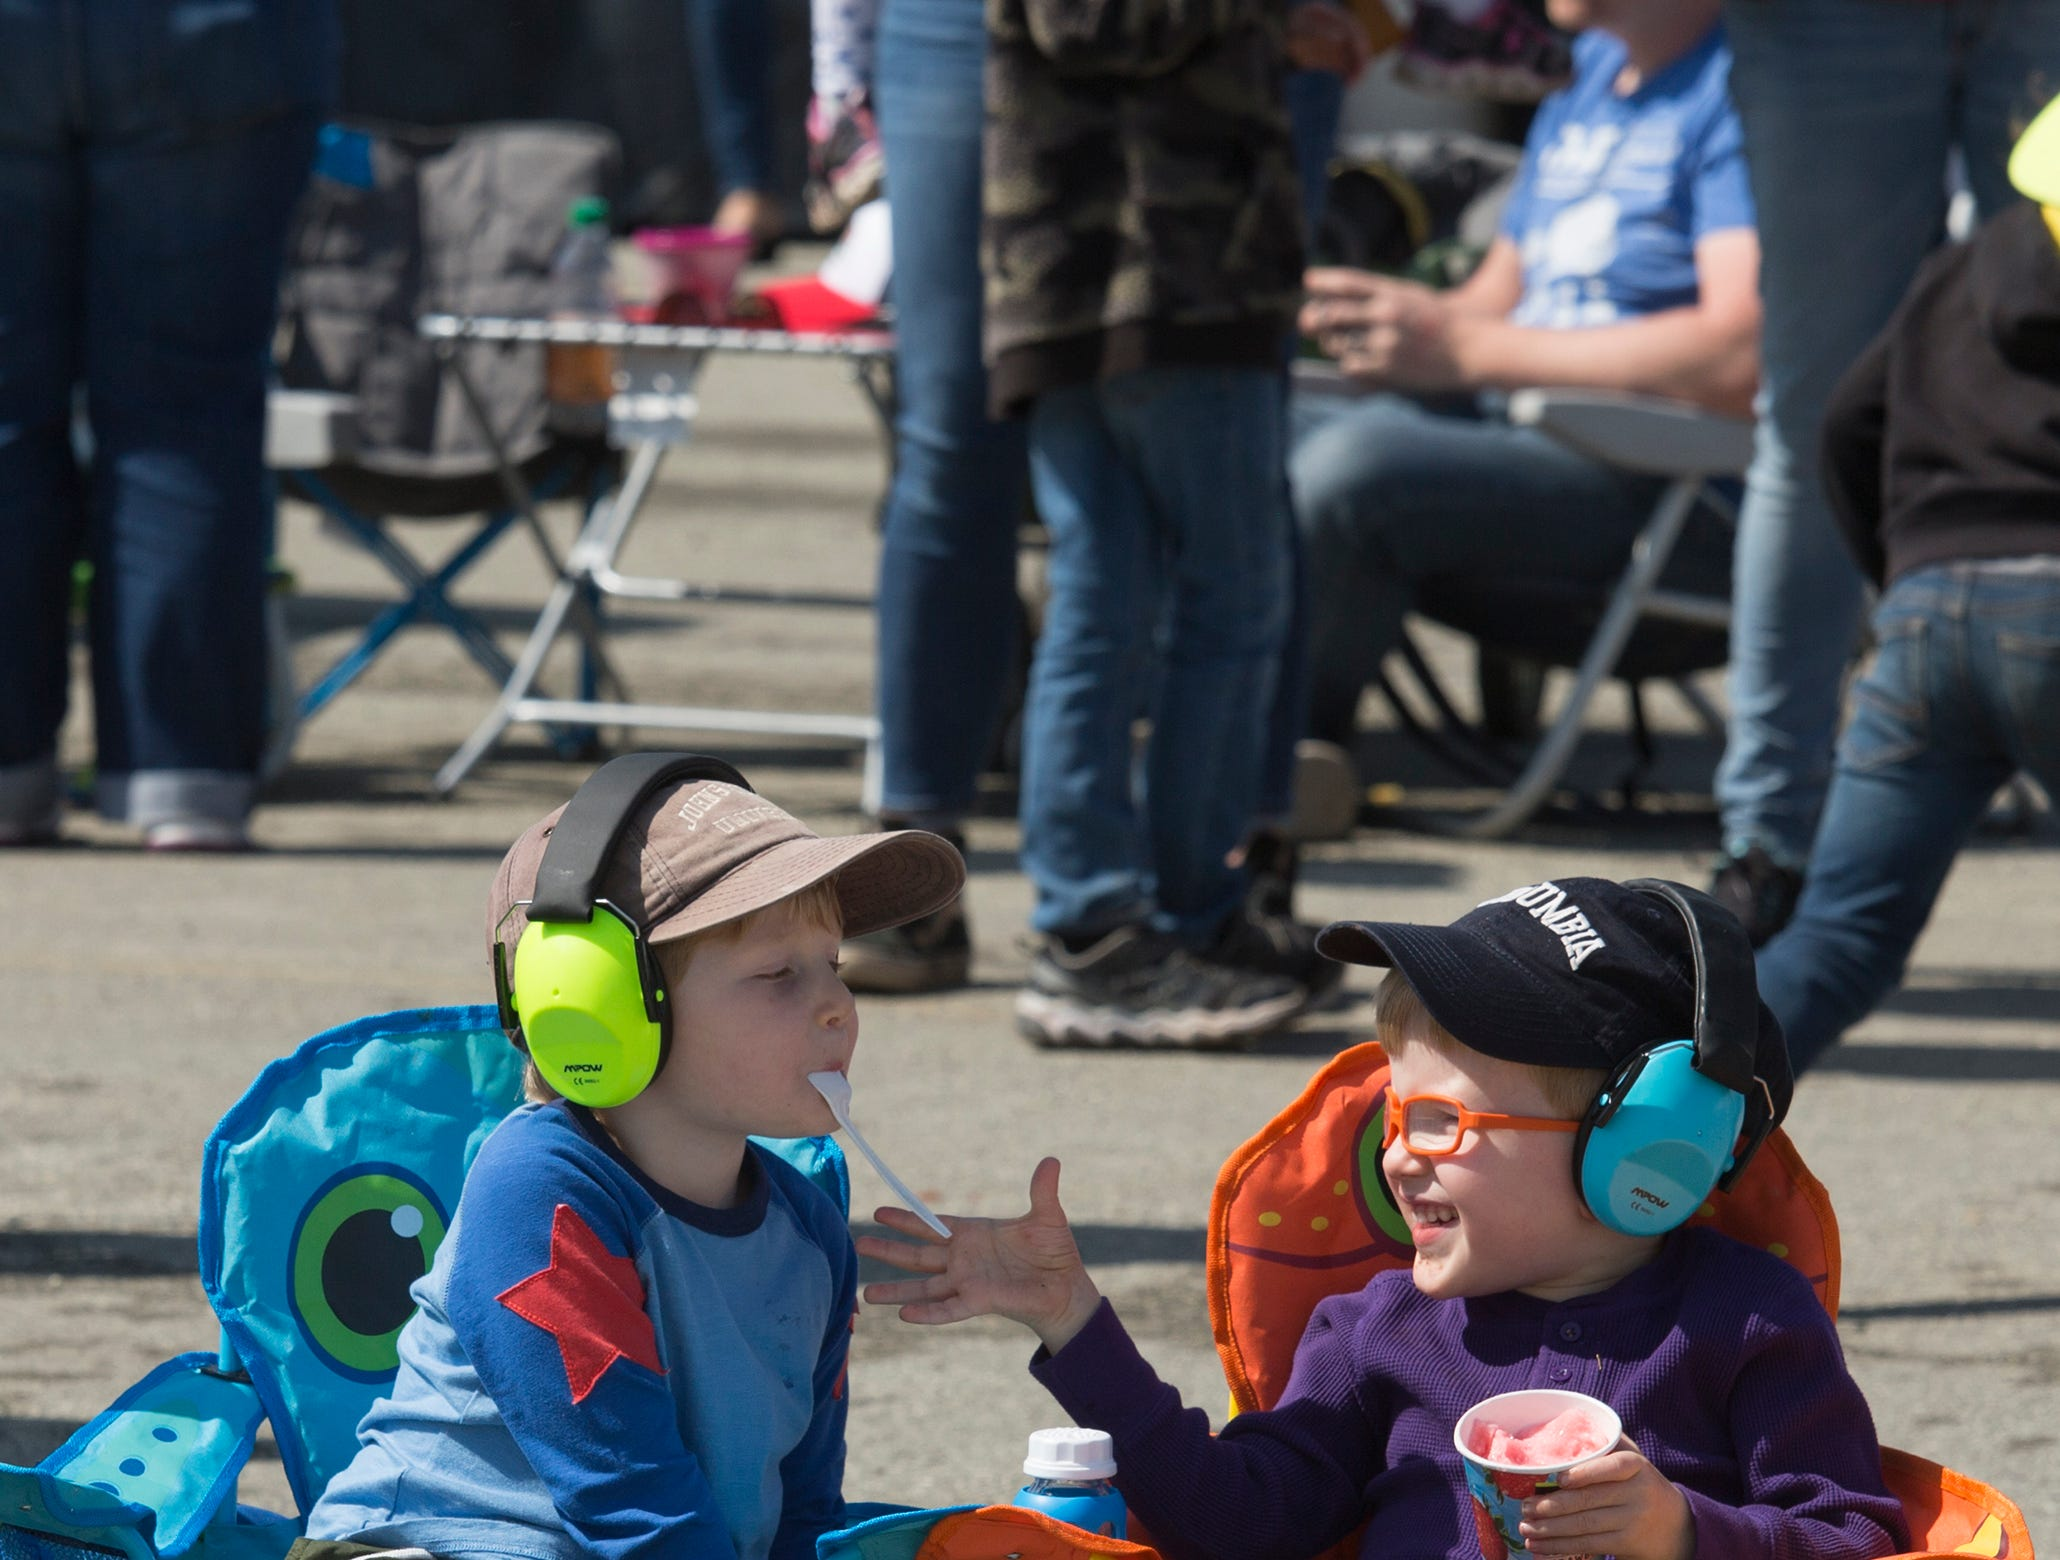 Five-year-old twins Alex and Arthur Ullom snack on frozen lemonade while watching the California International Airshow Salinas at the Salinas Airport on March 23, 2019. (Photo by David Royal)